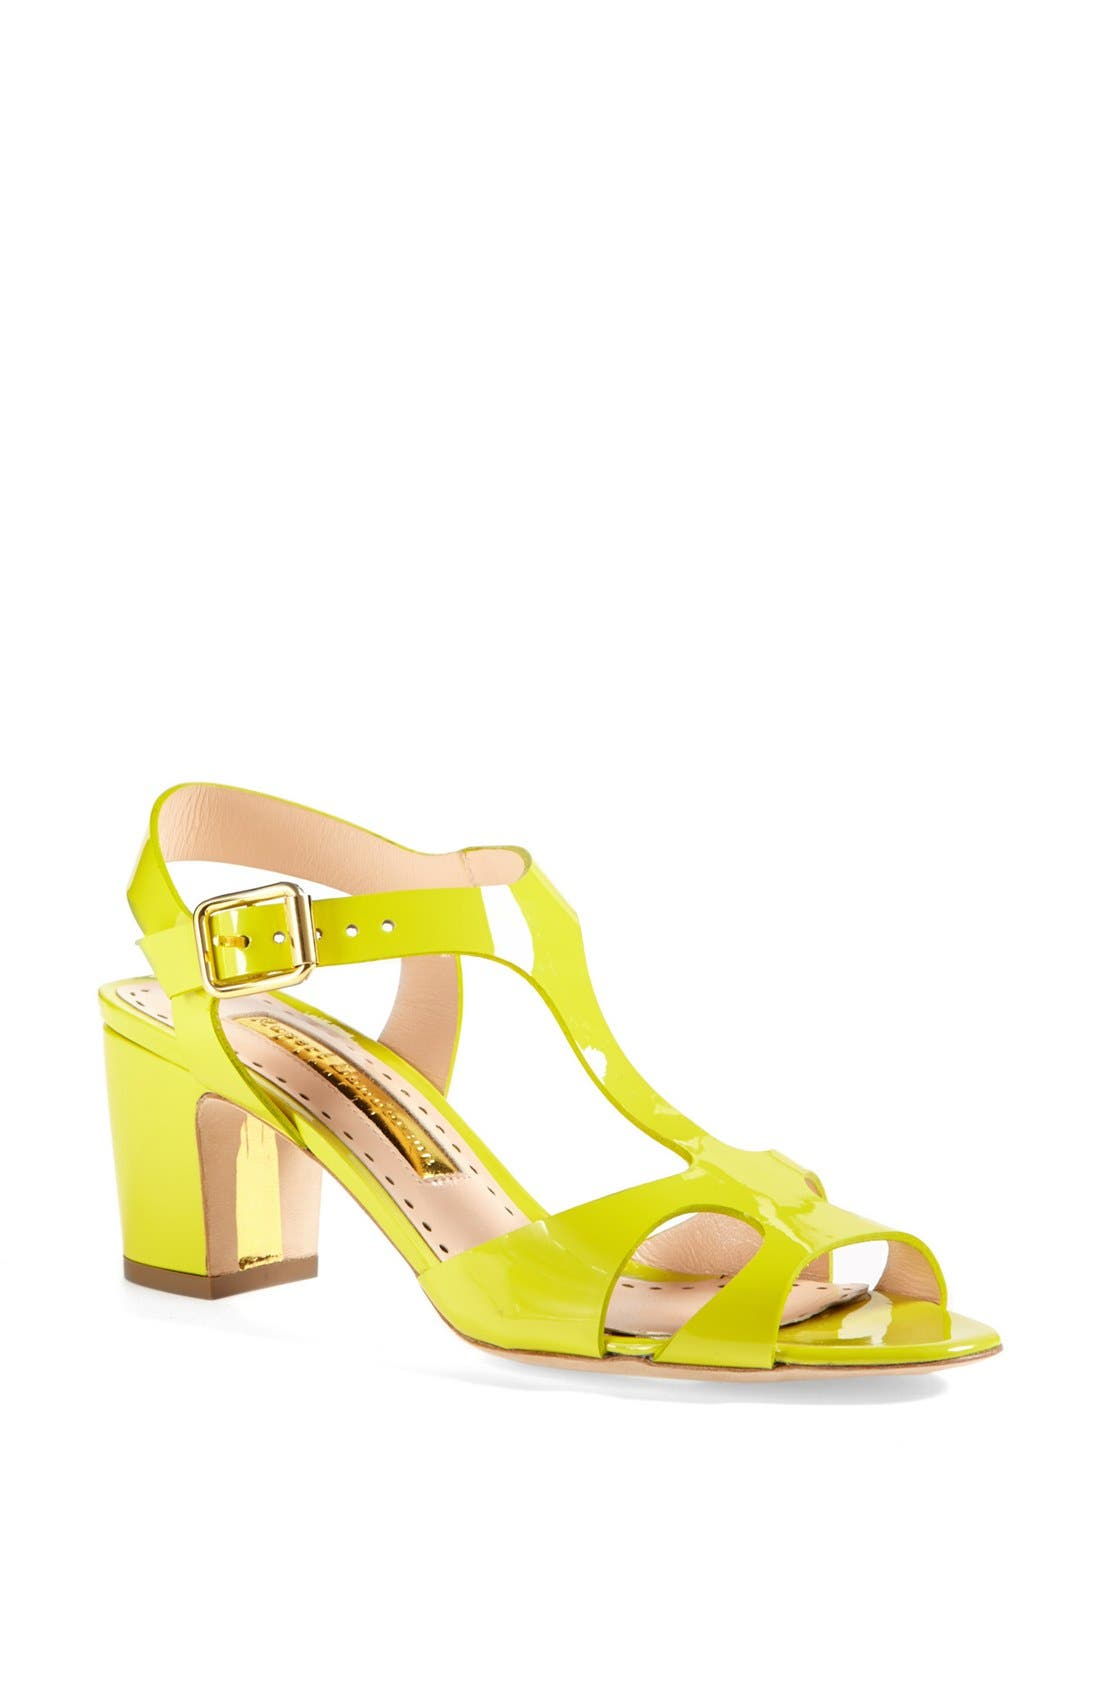 Alternate Image 1 Selected - Rupert Sanderson 'Ischia' Patent Leather Sandal